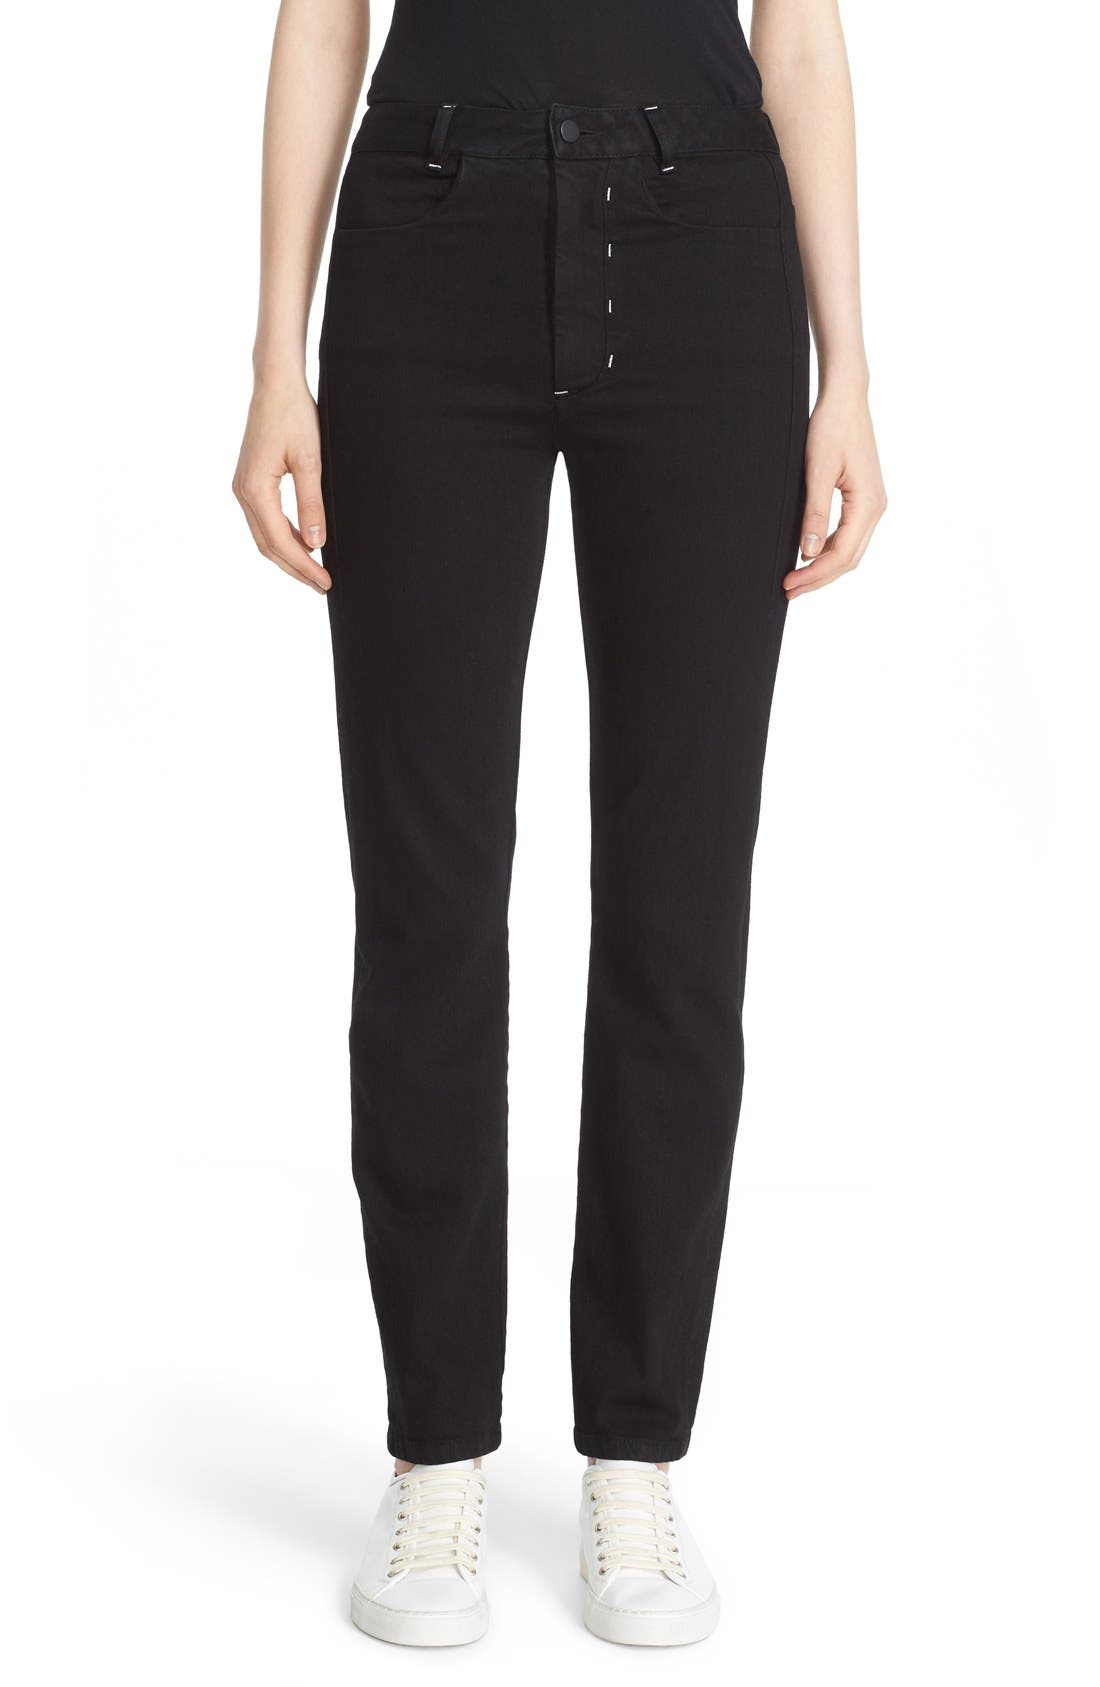 Colovos Stovepipe Stretch Jeans